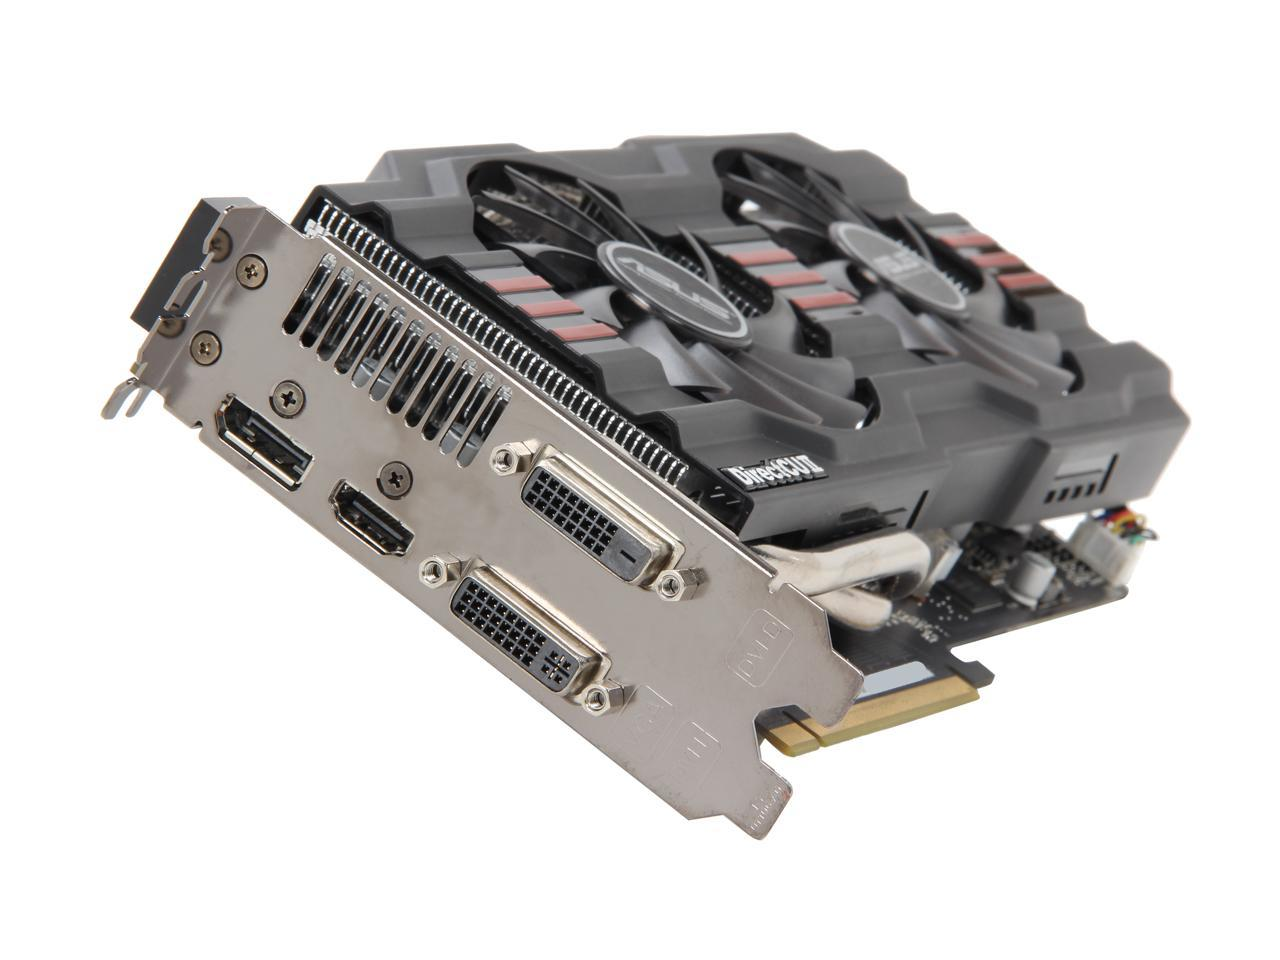 Asus Radeon Hd 7870 Ghz Edition Directx 11 Hd7870 Dc2 2gd5 V2 Video Card Newegg Com